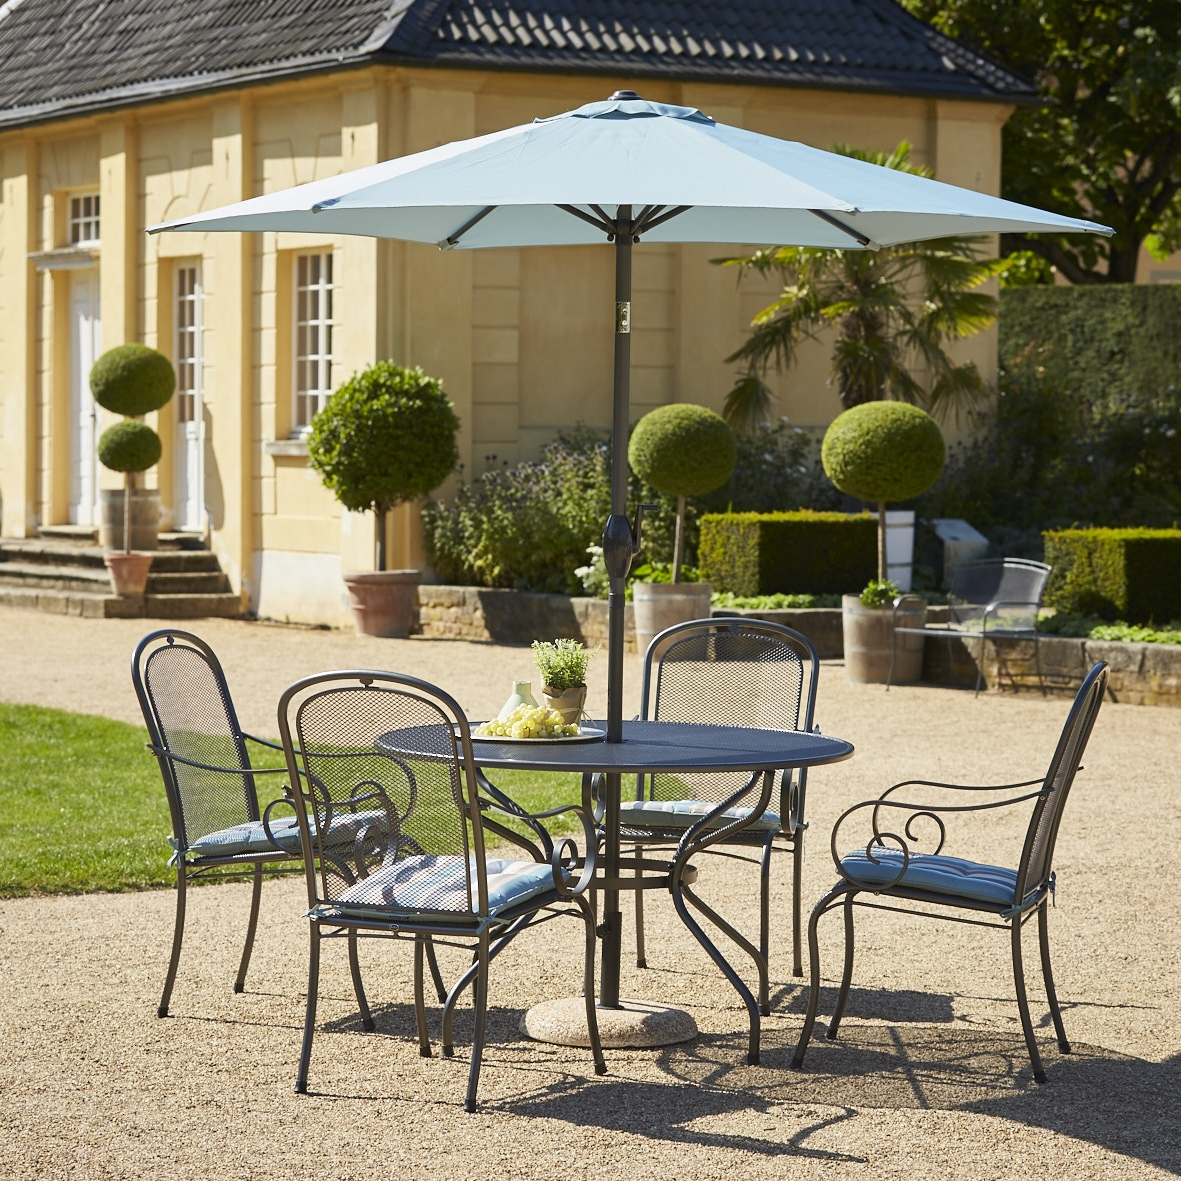 Welcome to Royal Garden® Furniture